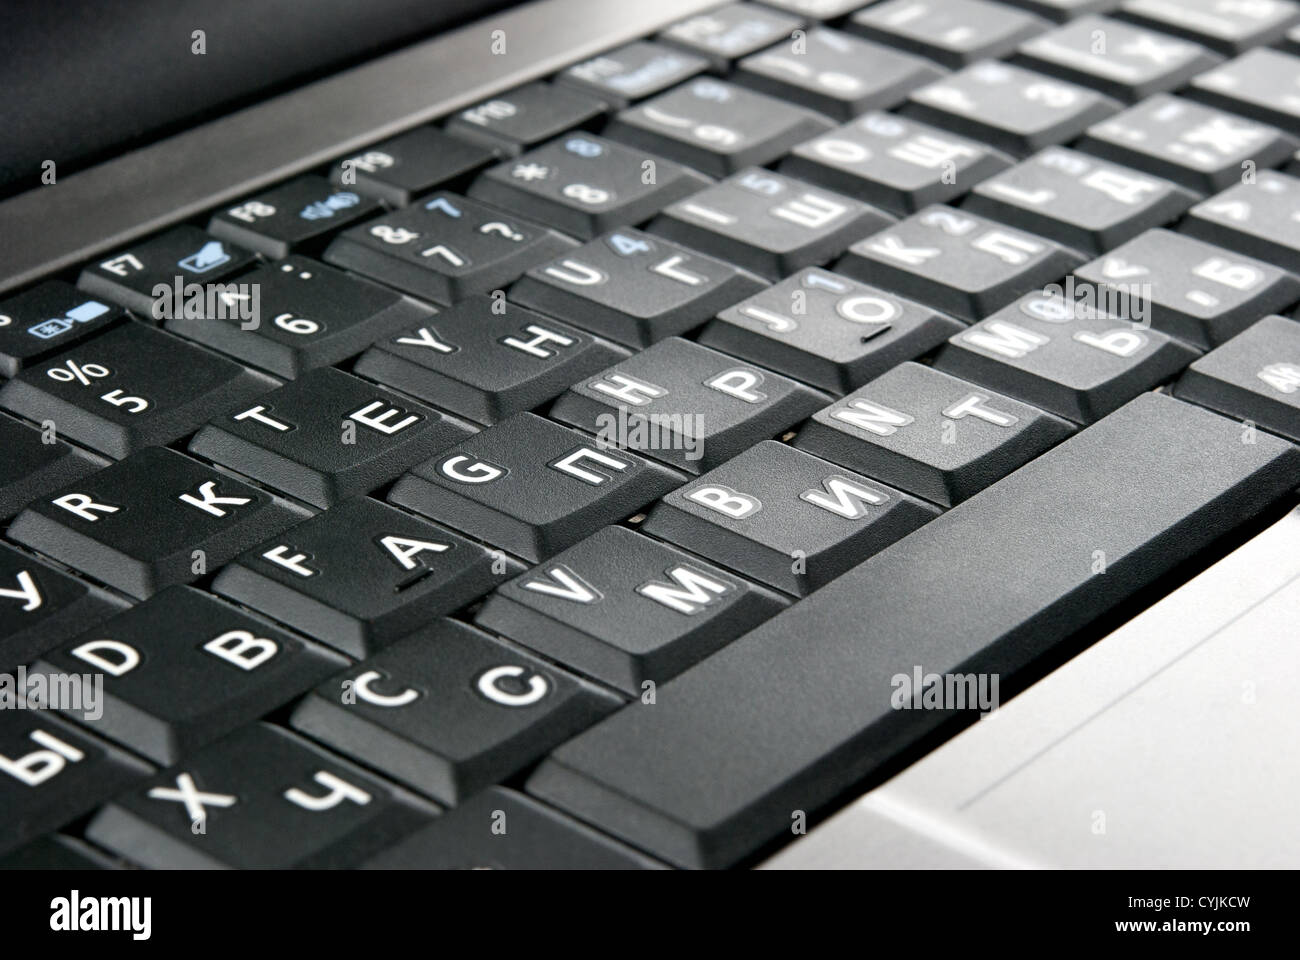 Laptop keyboard closeup. Oblique view - Stock Image